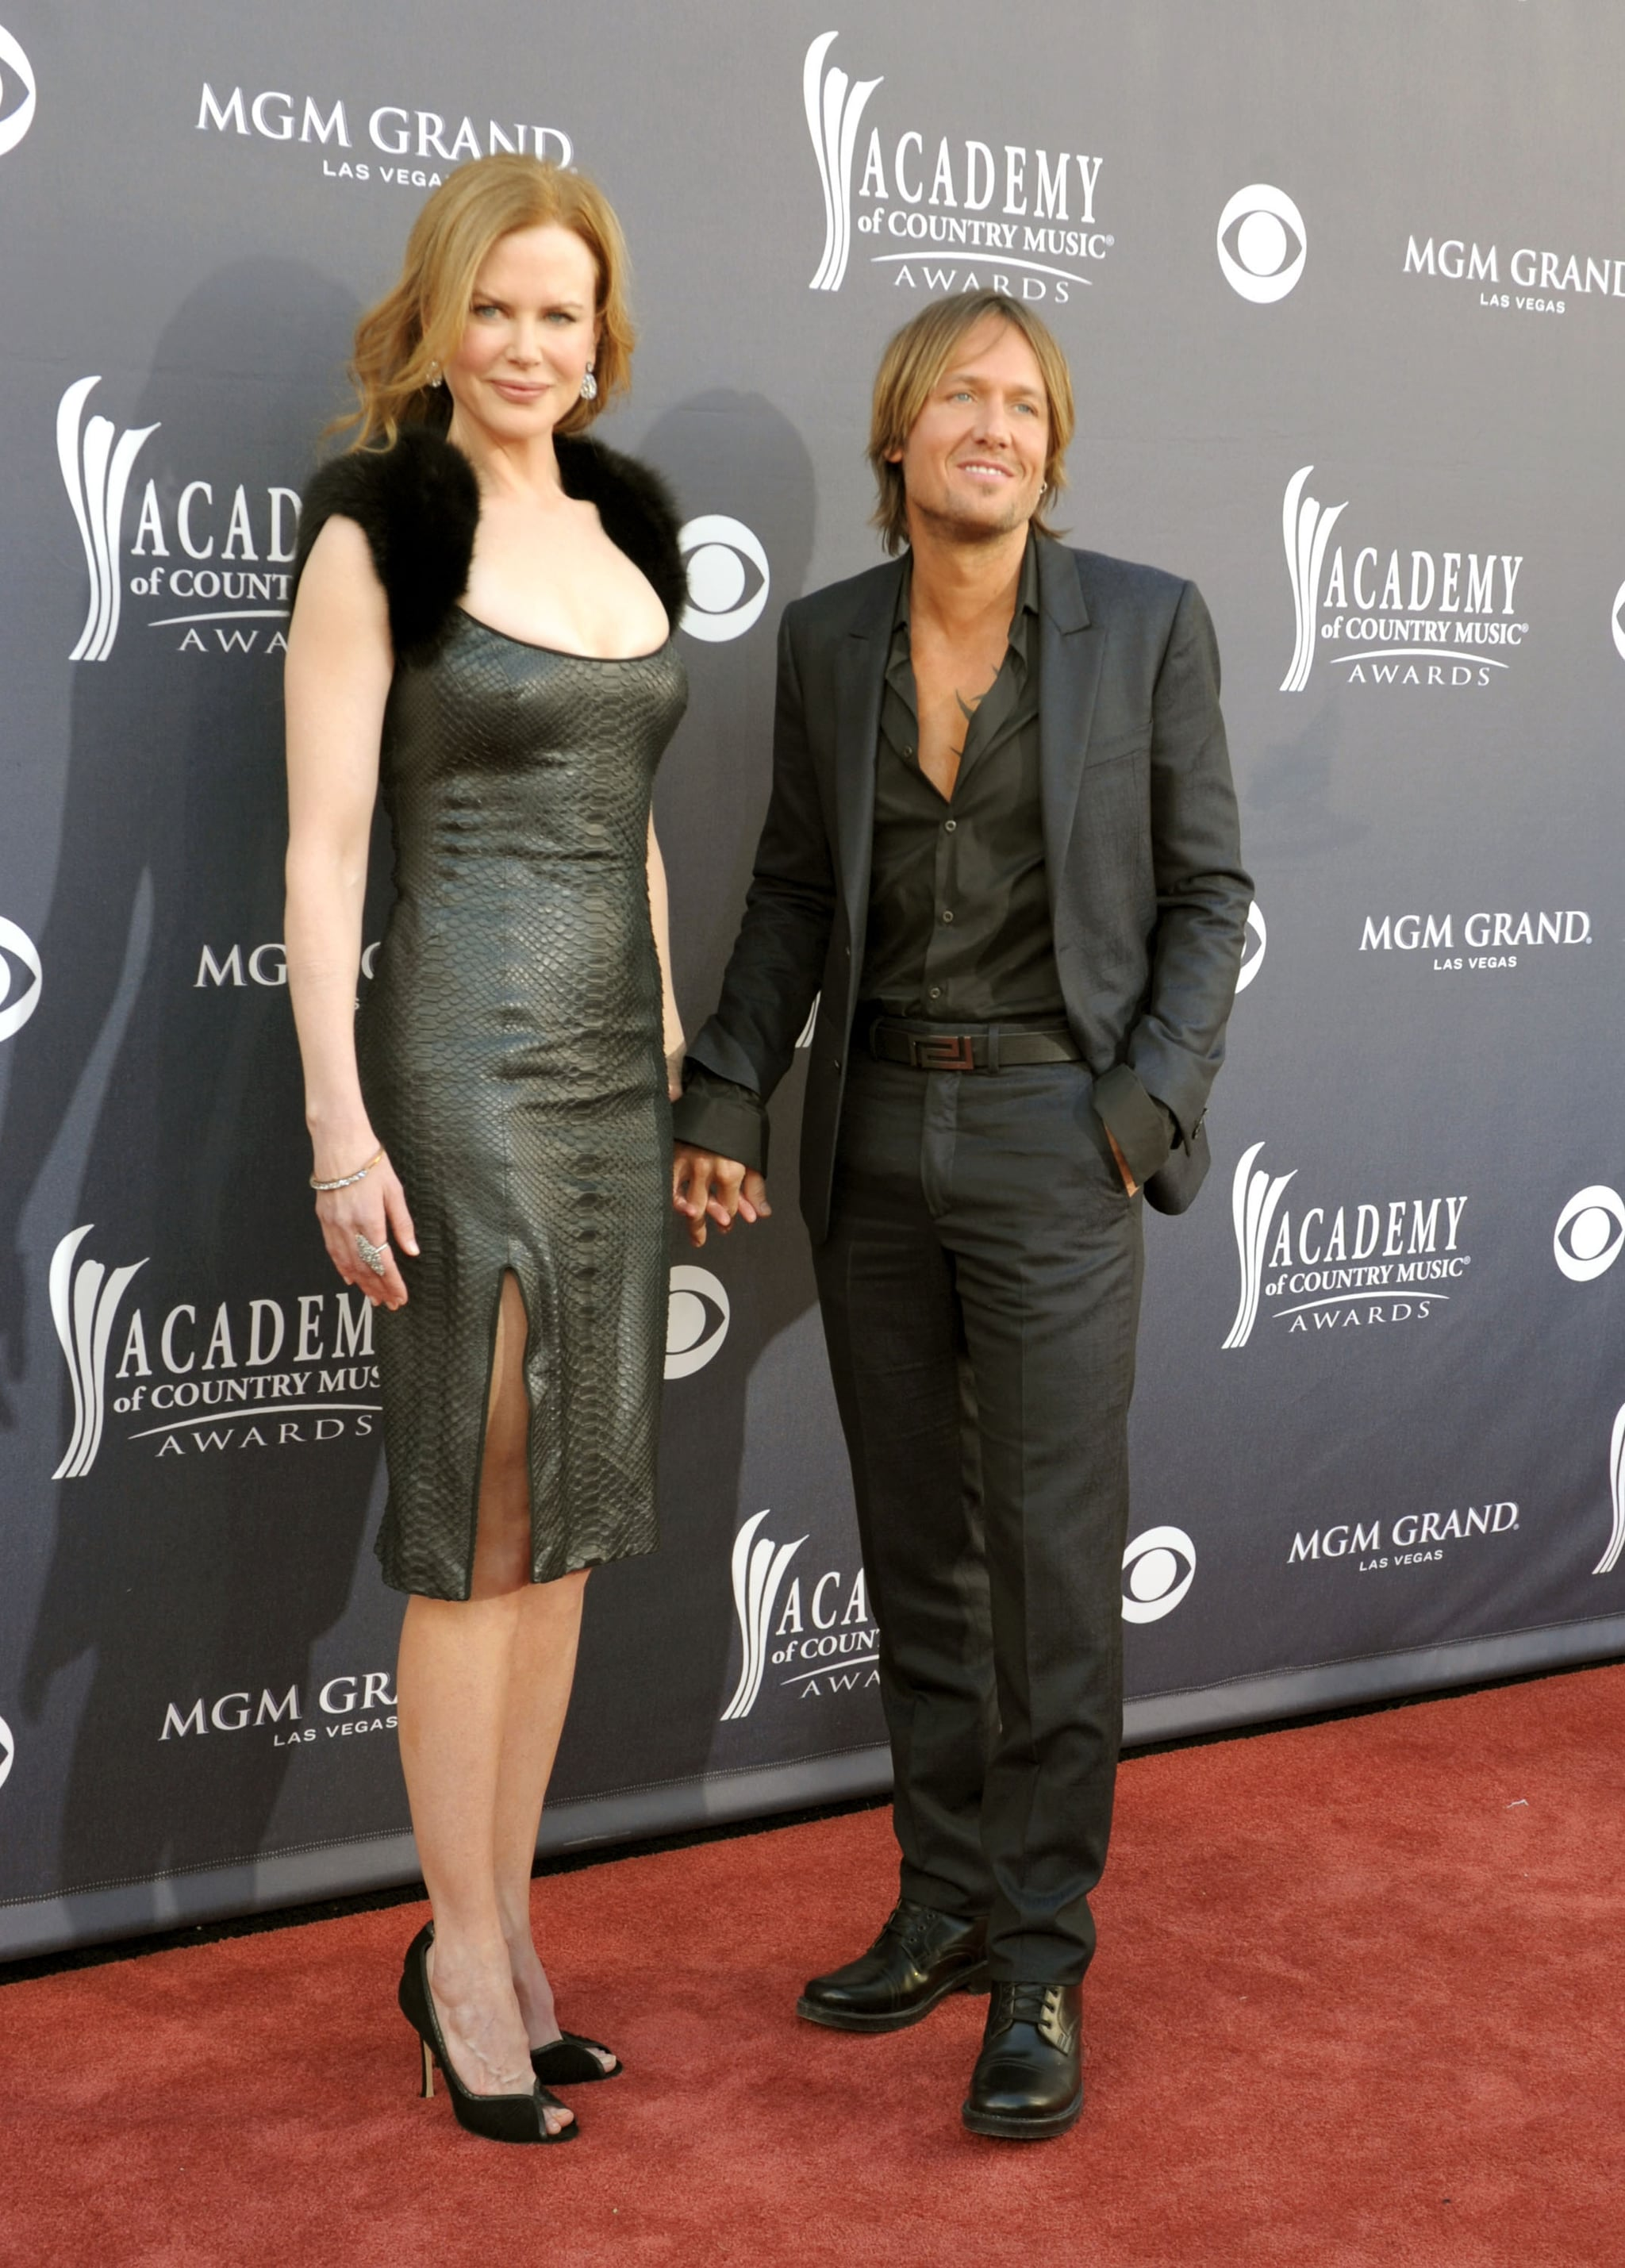 Nicole Kidman And Keith Urban Height Difference Hall Of Fame Love Knows No Limits Popsugar Love Sex Photo 10